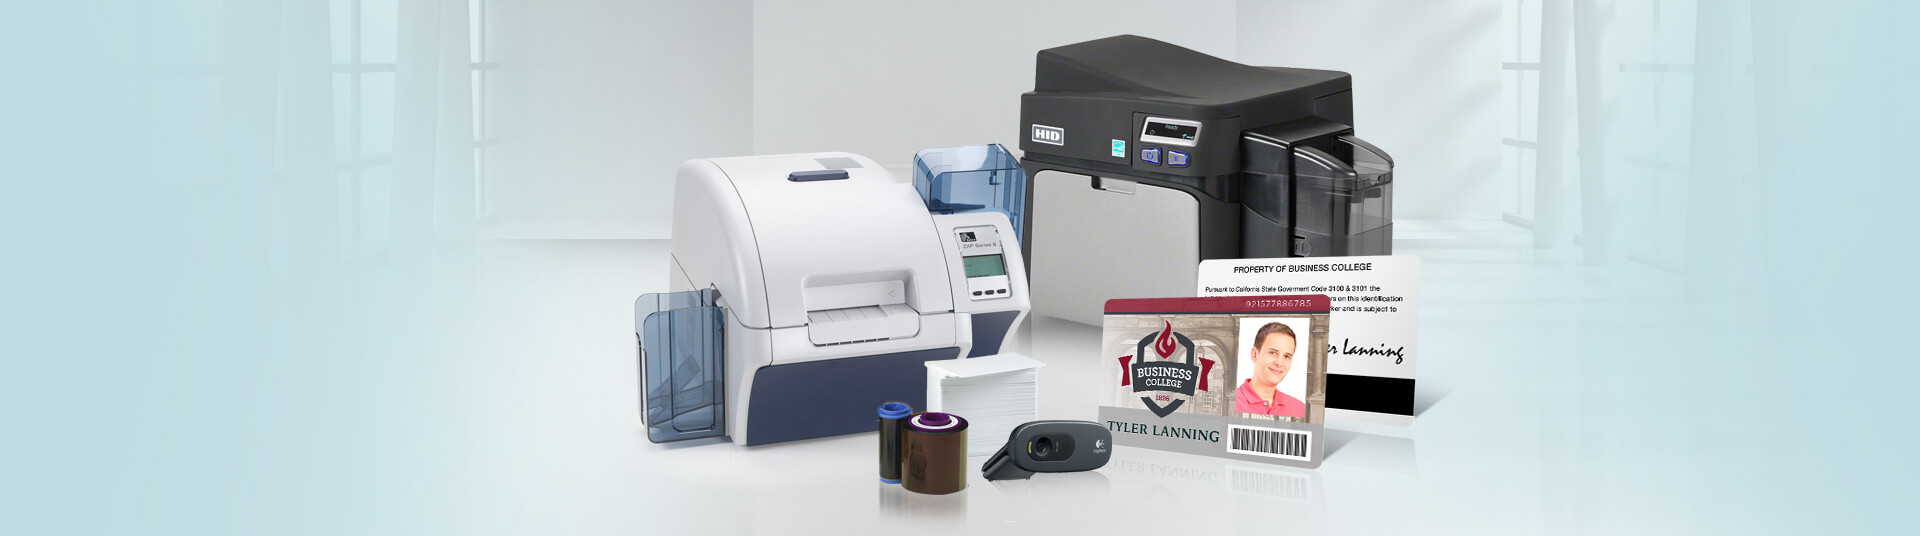 types of pvc card printers - Pvc Card Printer